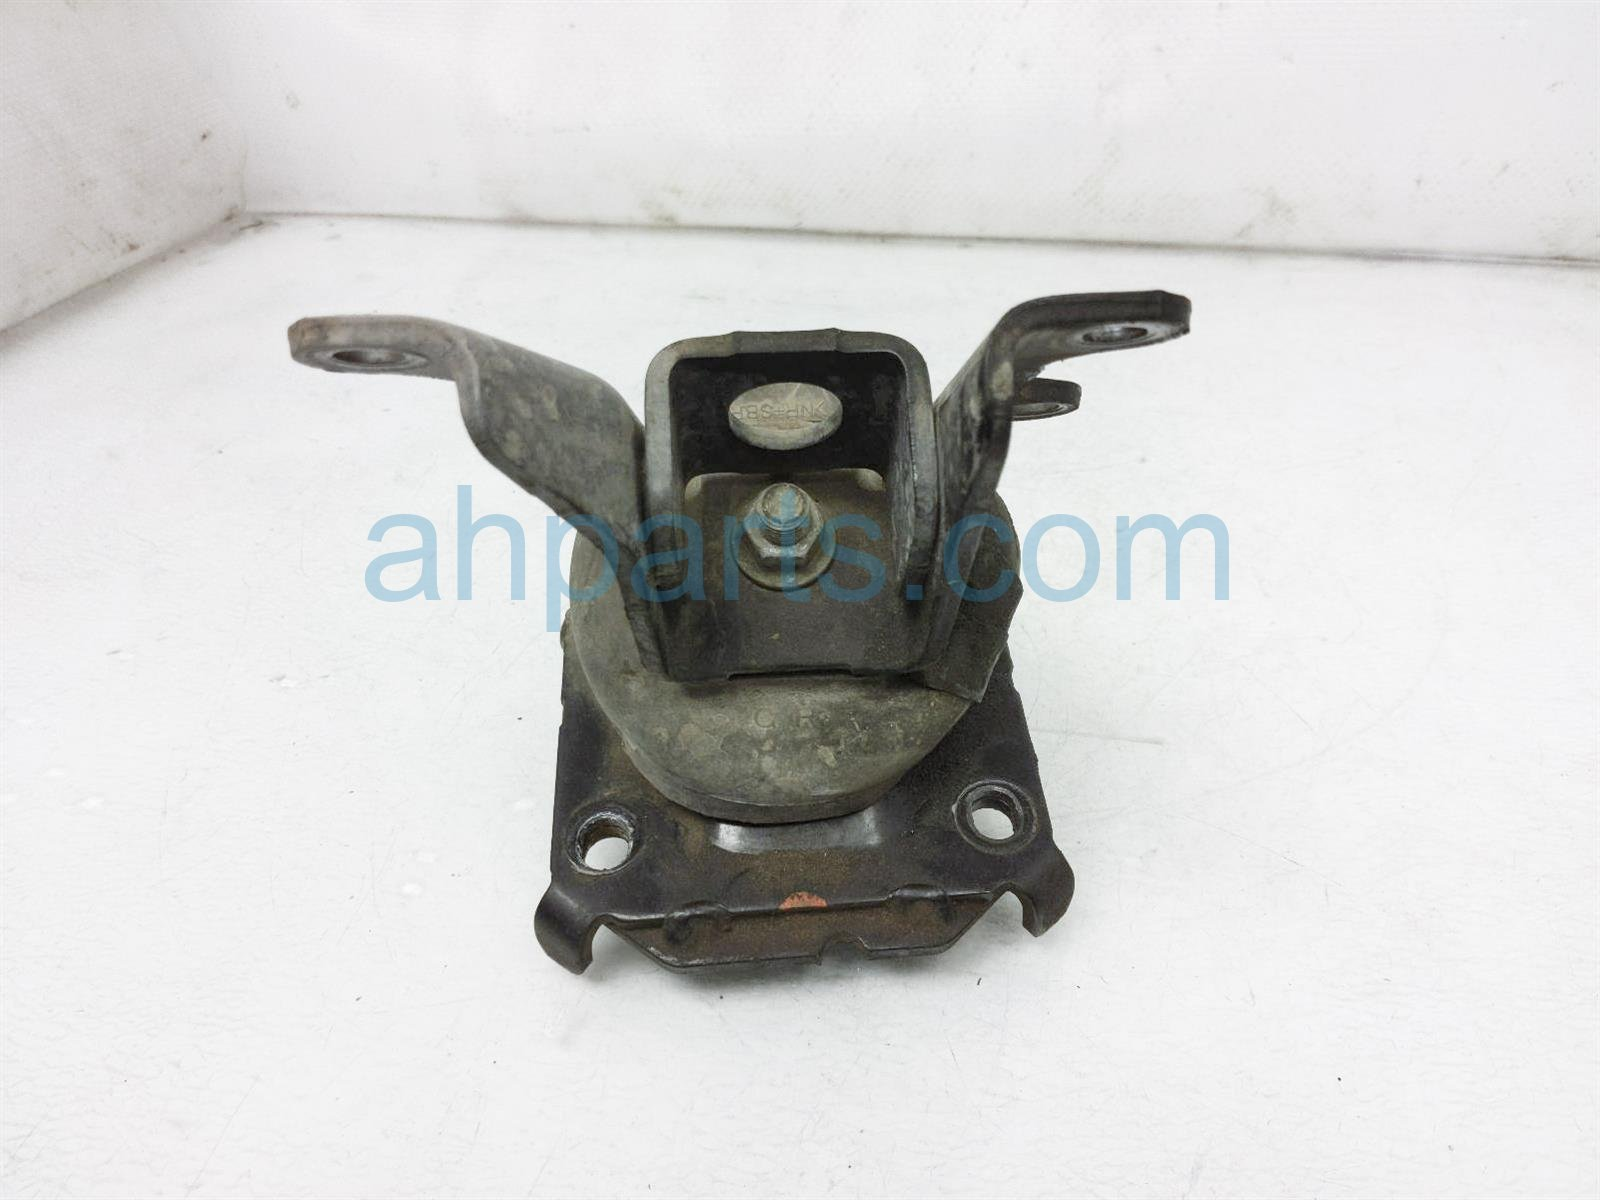 2017 Toyota Tacoma Engine/motor Front Passenger Engine Mount 12361 0P130 Replacement